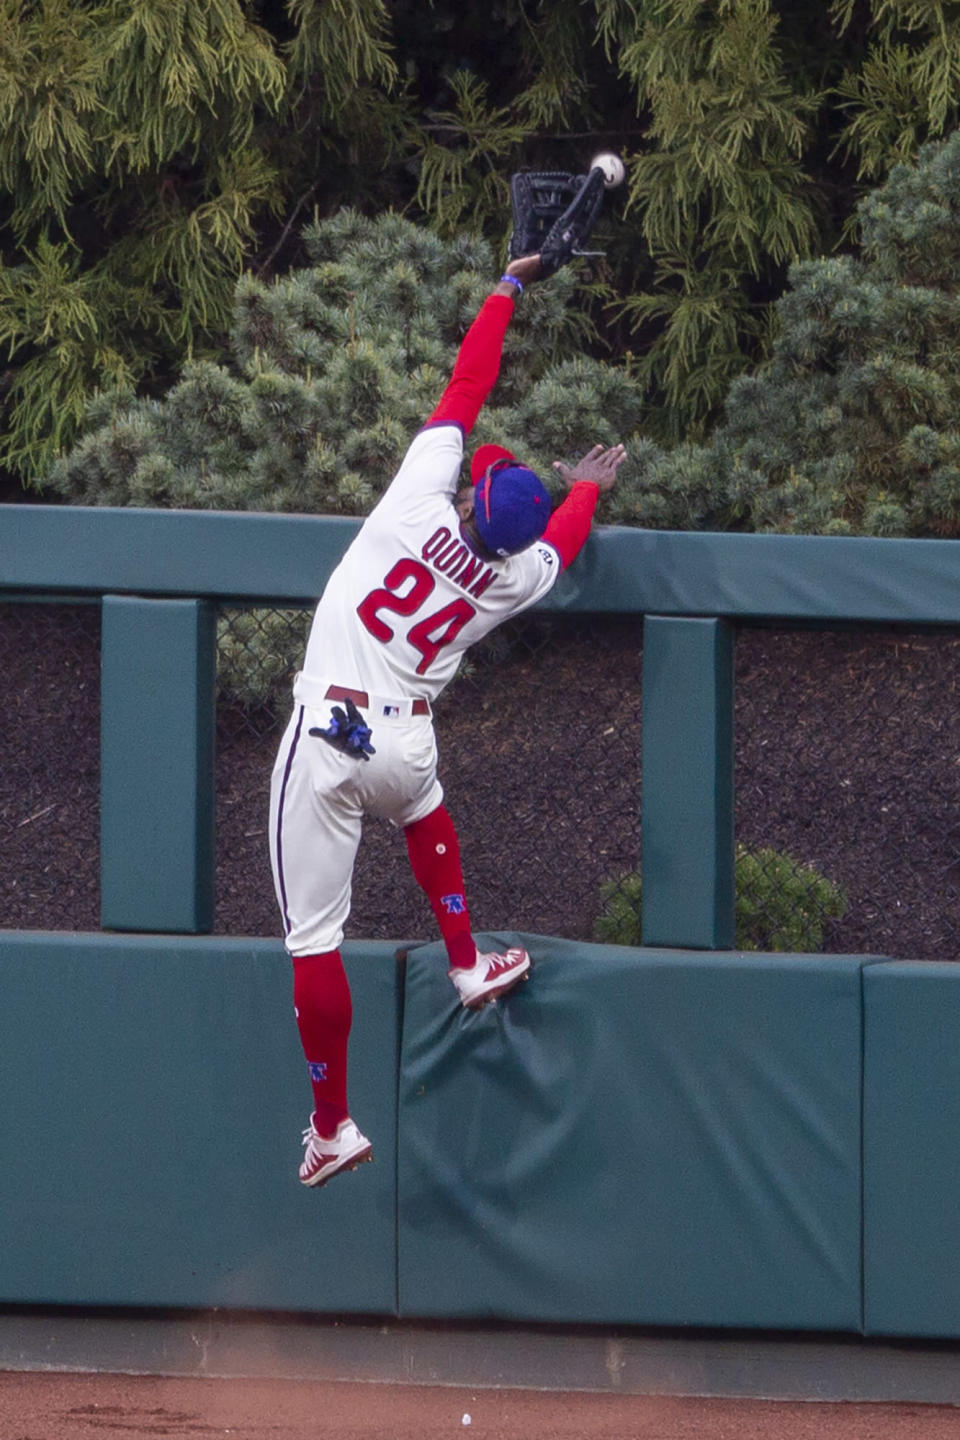 Philadelphia Phillies center fielder Roman Quinn goes over the fence trying to catch a home run by St. Louis Cardinals' Paul DeJong (11) during the third inning of a baseball game, Saturday, April 17, 2021, in Philadelphia. (AP Photo/Laurence Kesterson)